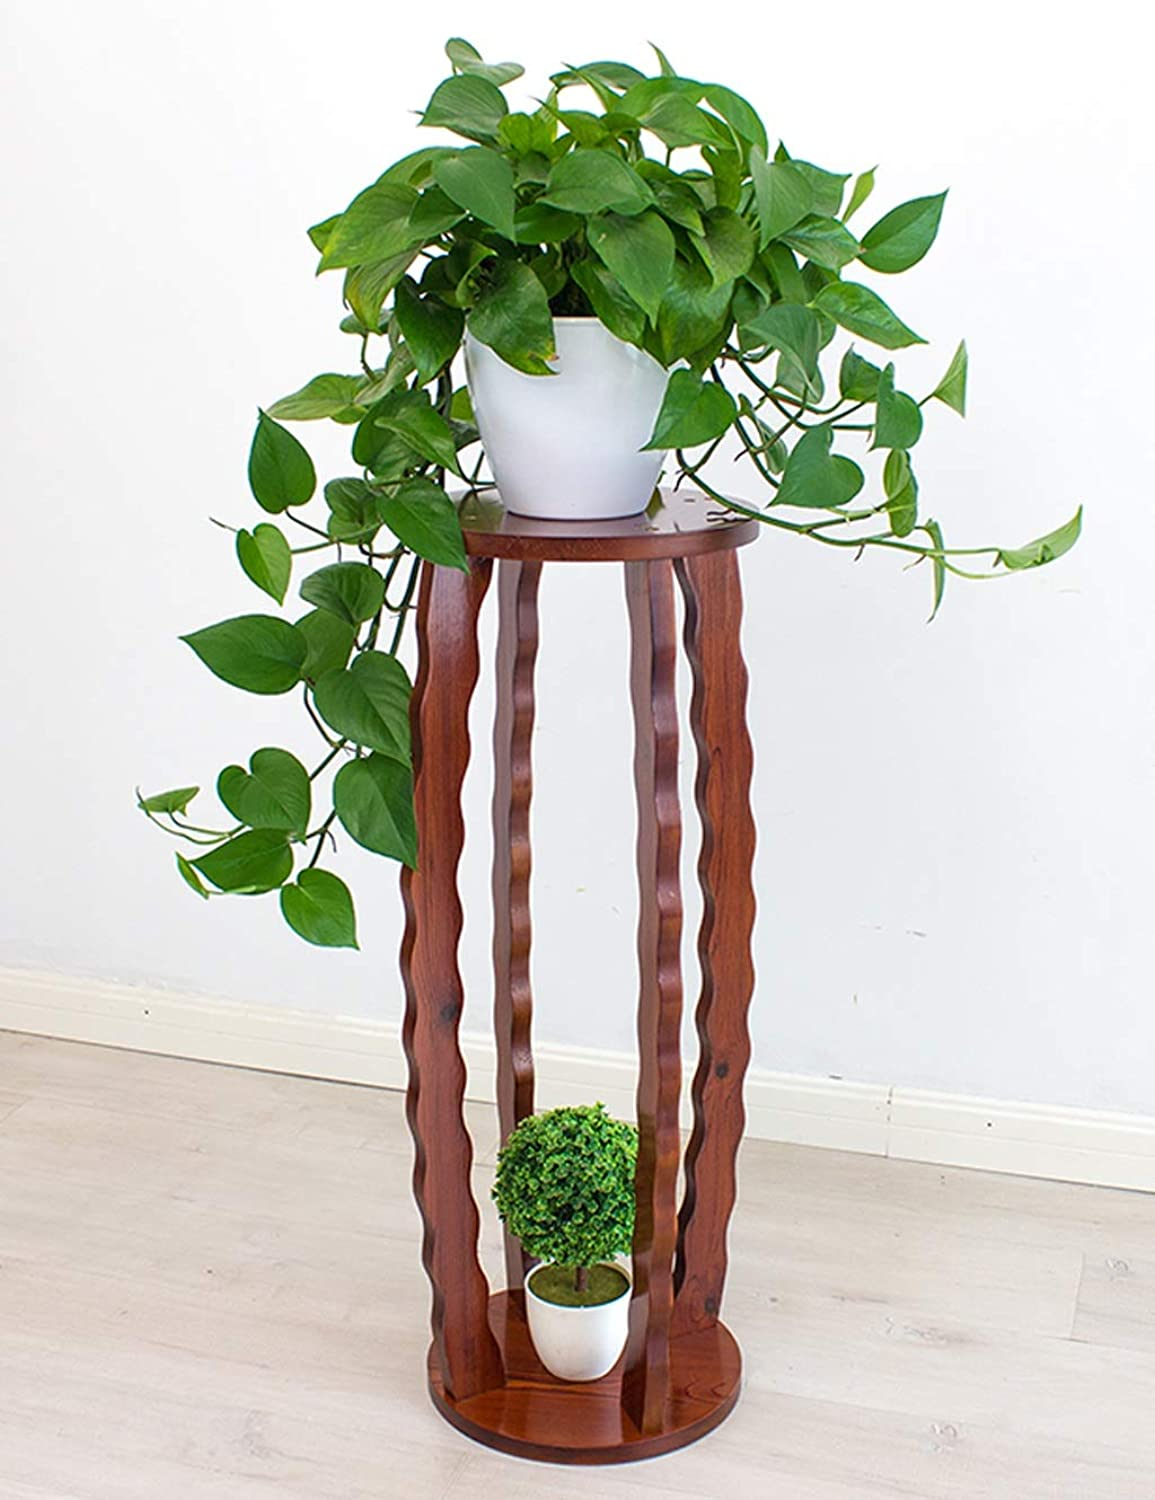 Flower Stand Solid Wood Indoor Multi-Function Living Room Bedroom Corridor Plant Potted Green Plant Balcony Plant Stand